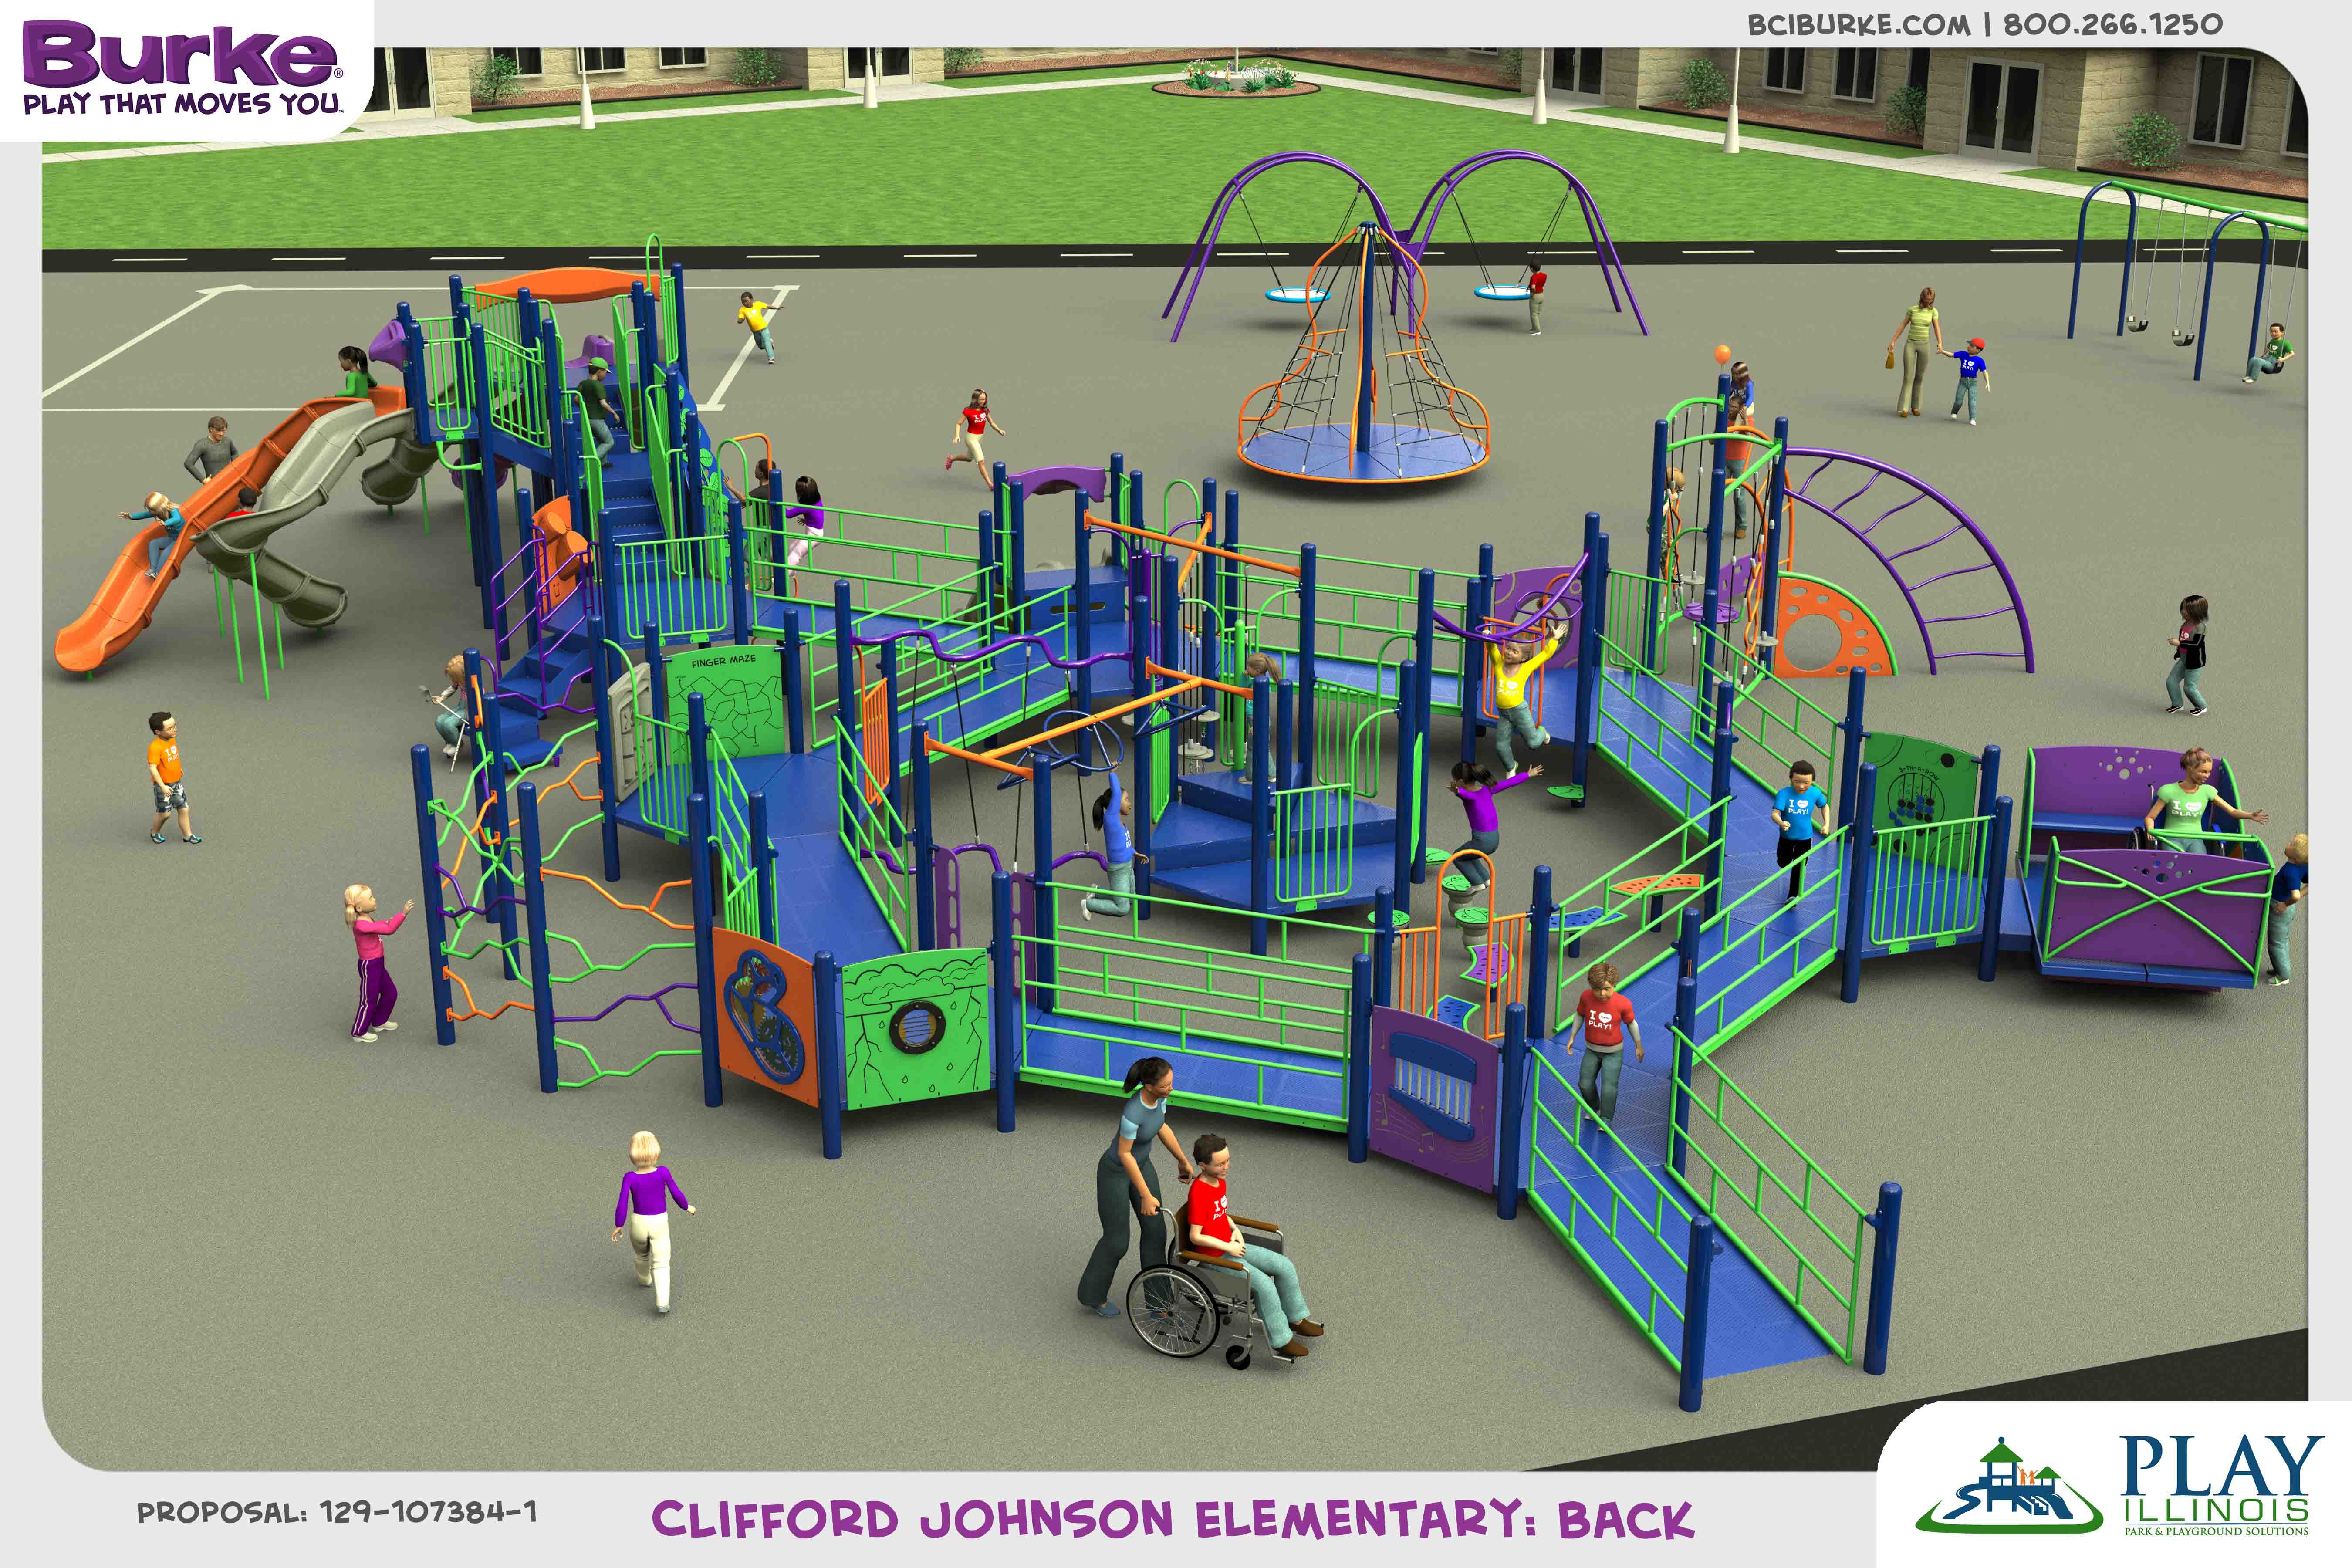 CliffordJohnsonBack dream build play experience accessible playgrounds